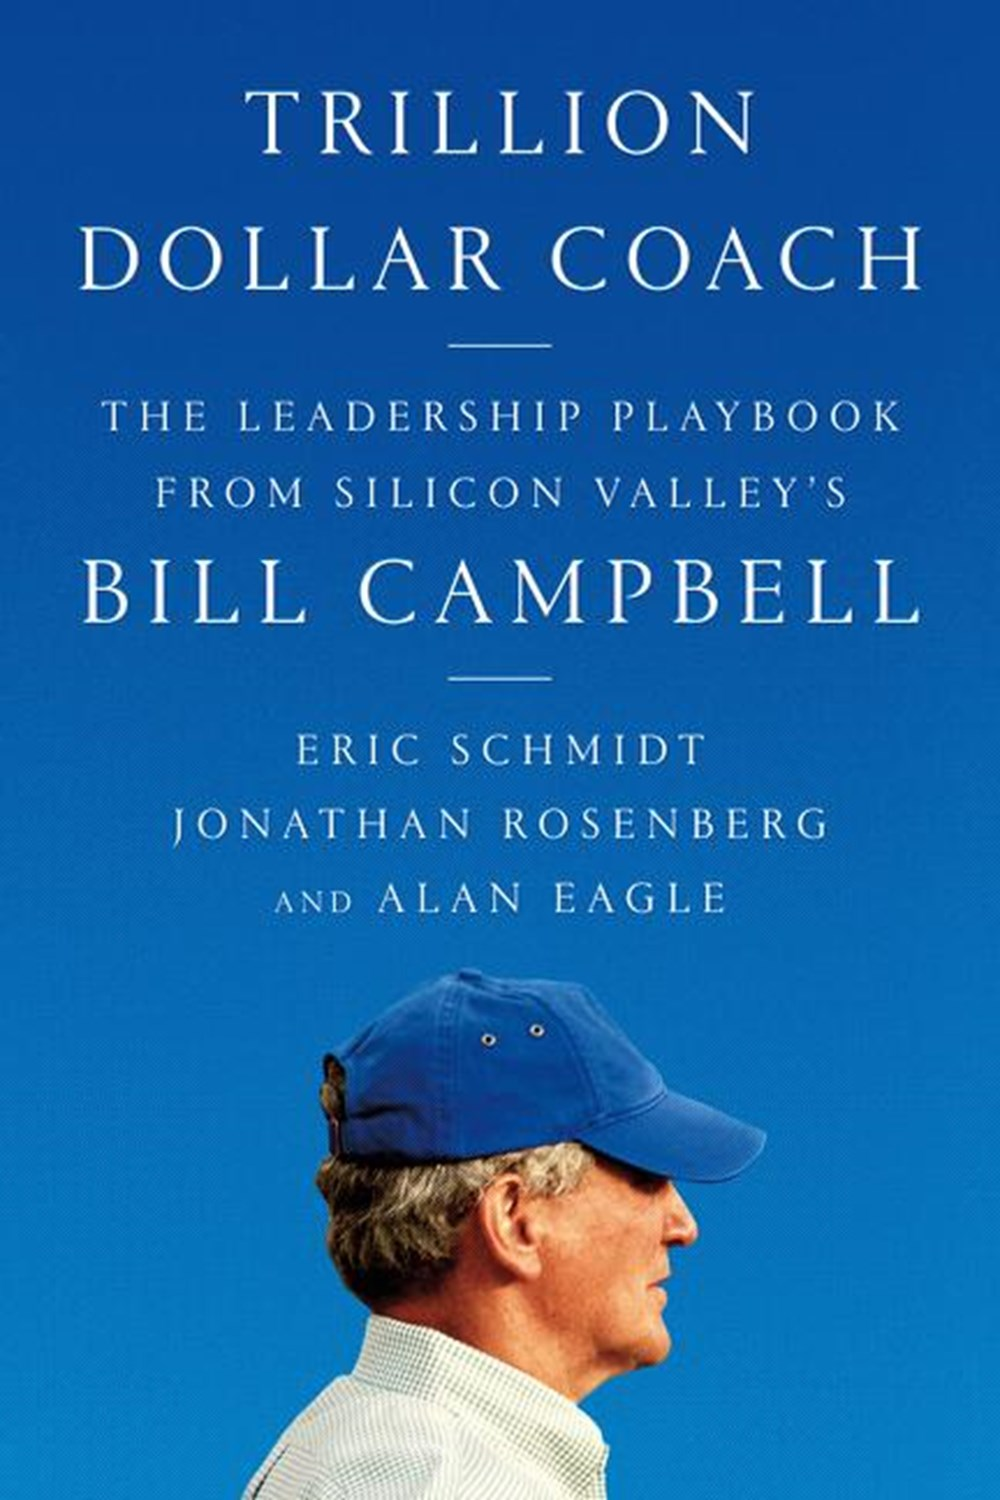 Trillion Dollar Coach The Leadership Playbook of Silicon Valley's Bill Campbell